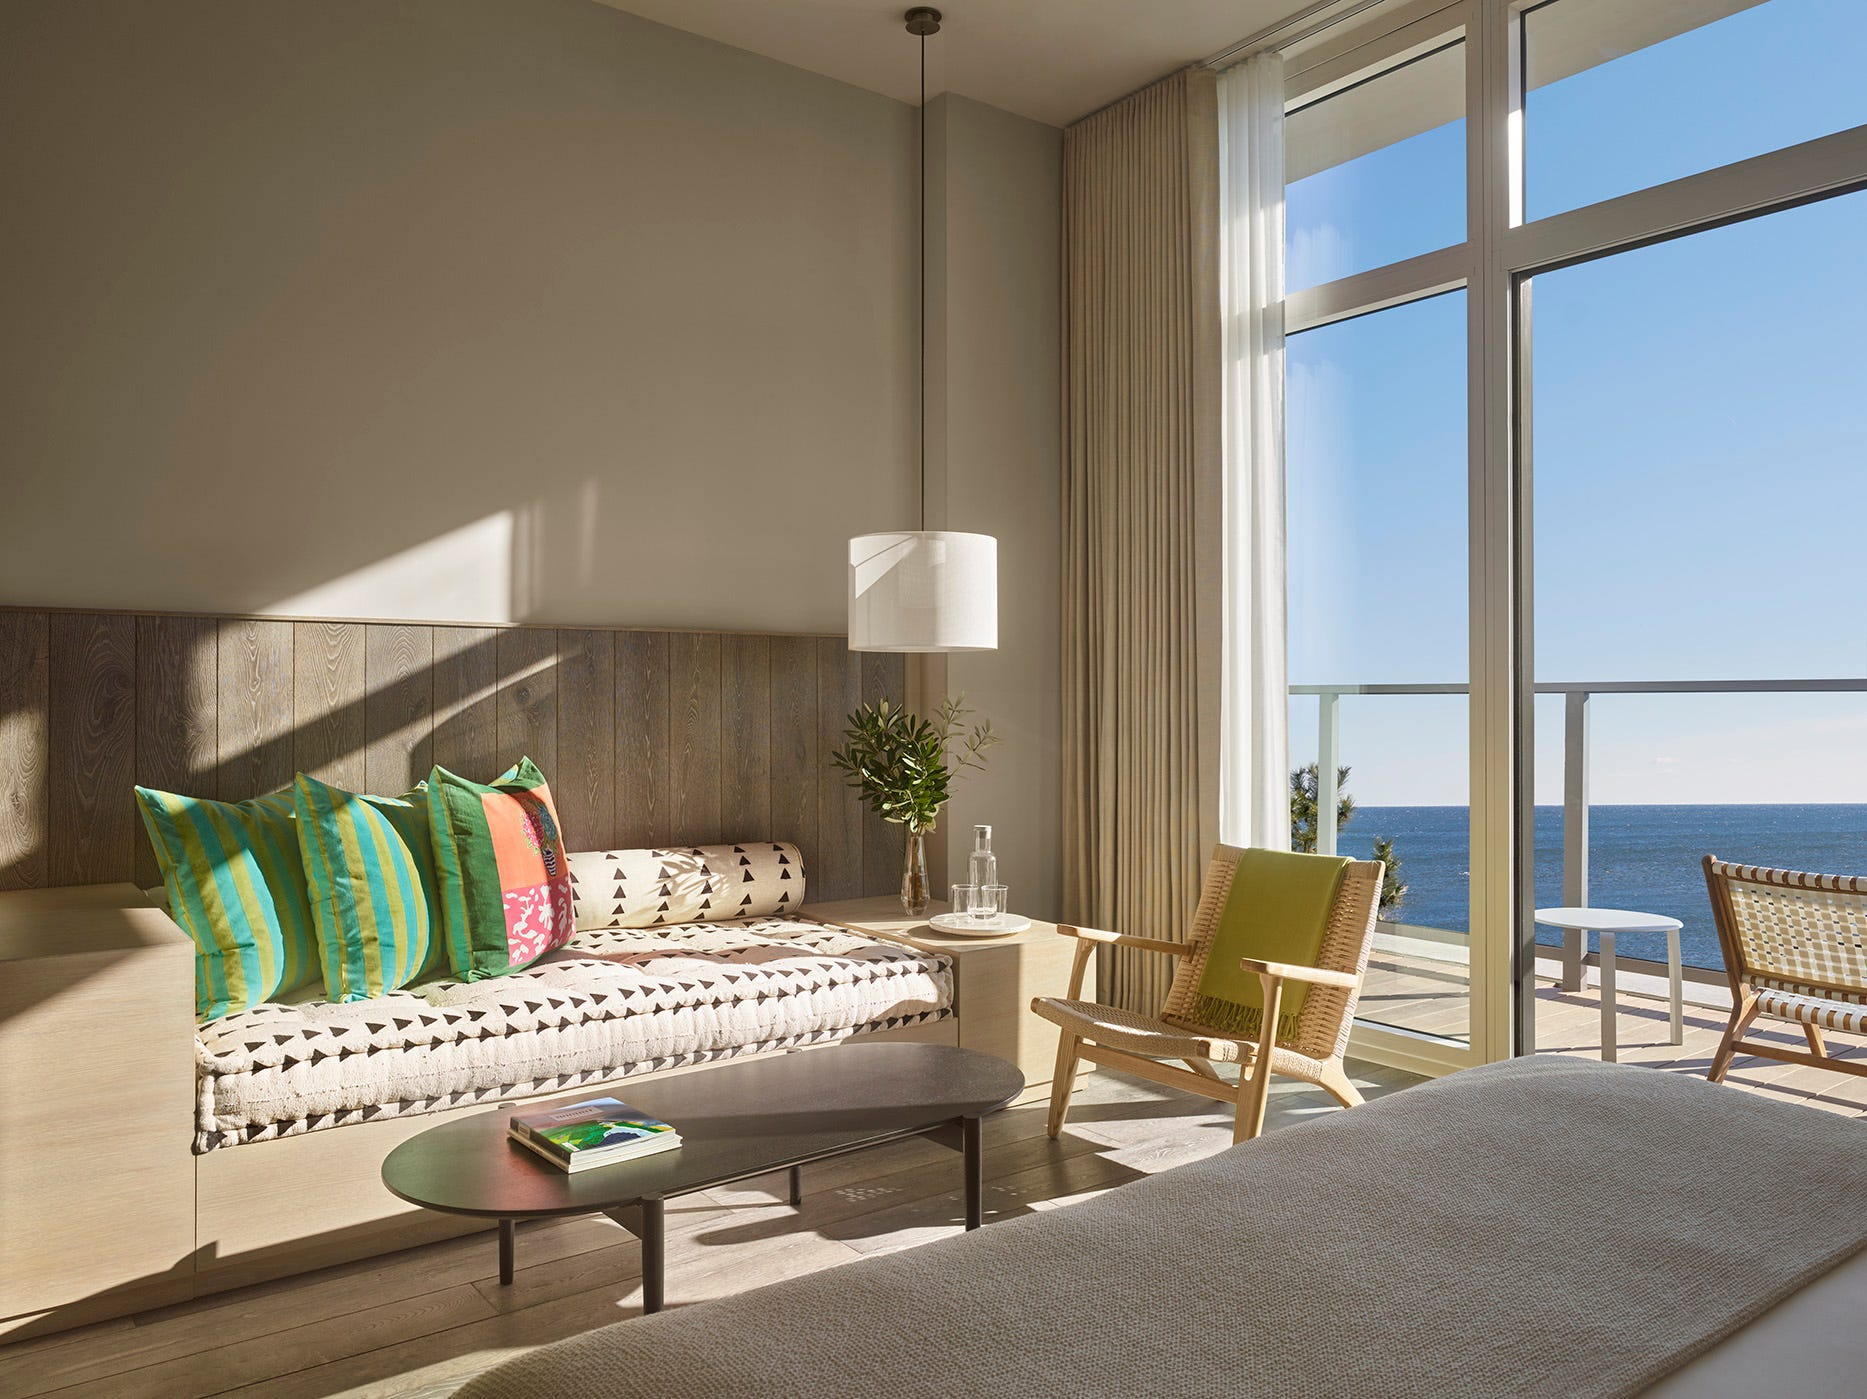 Asbury Ocean Club Hotel: Get An Inside Look Before It Opens With Asbury Club Chairs (View 13 of 15)